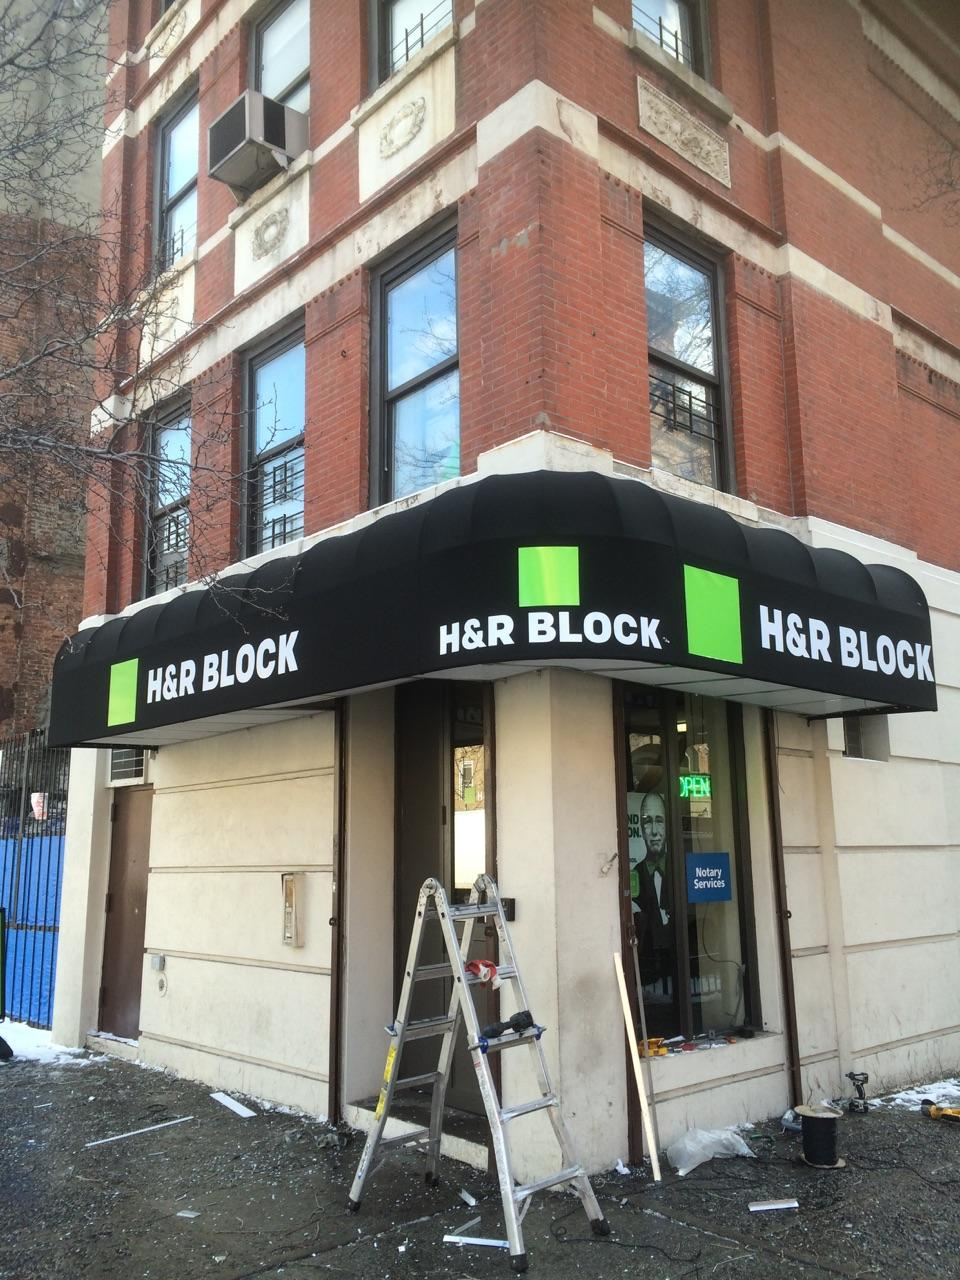 H&R BLOCK Lexington